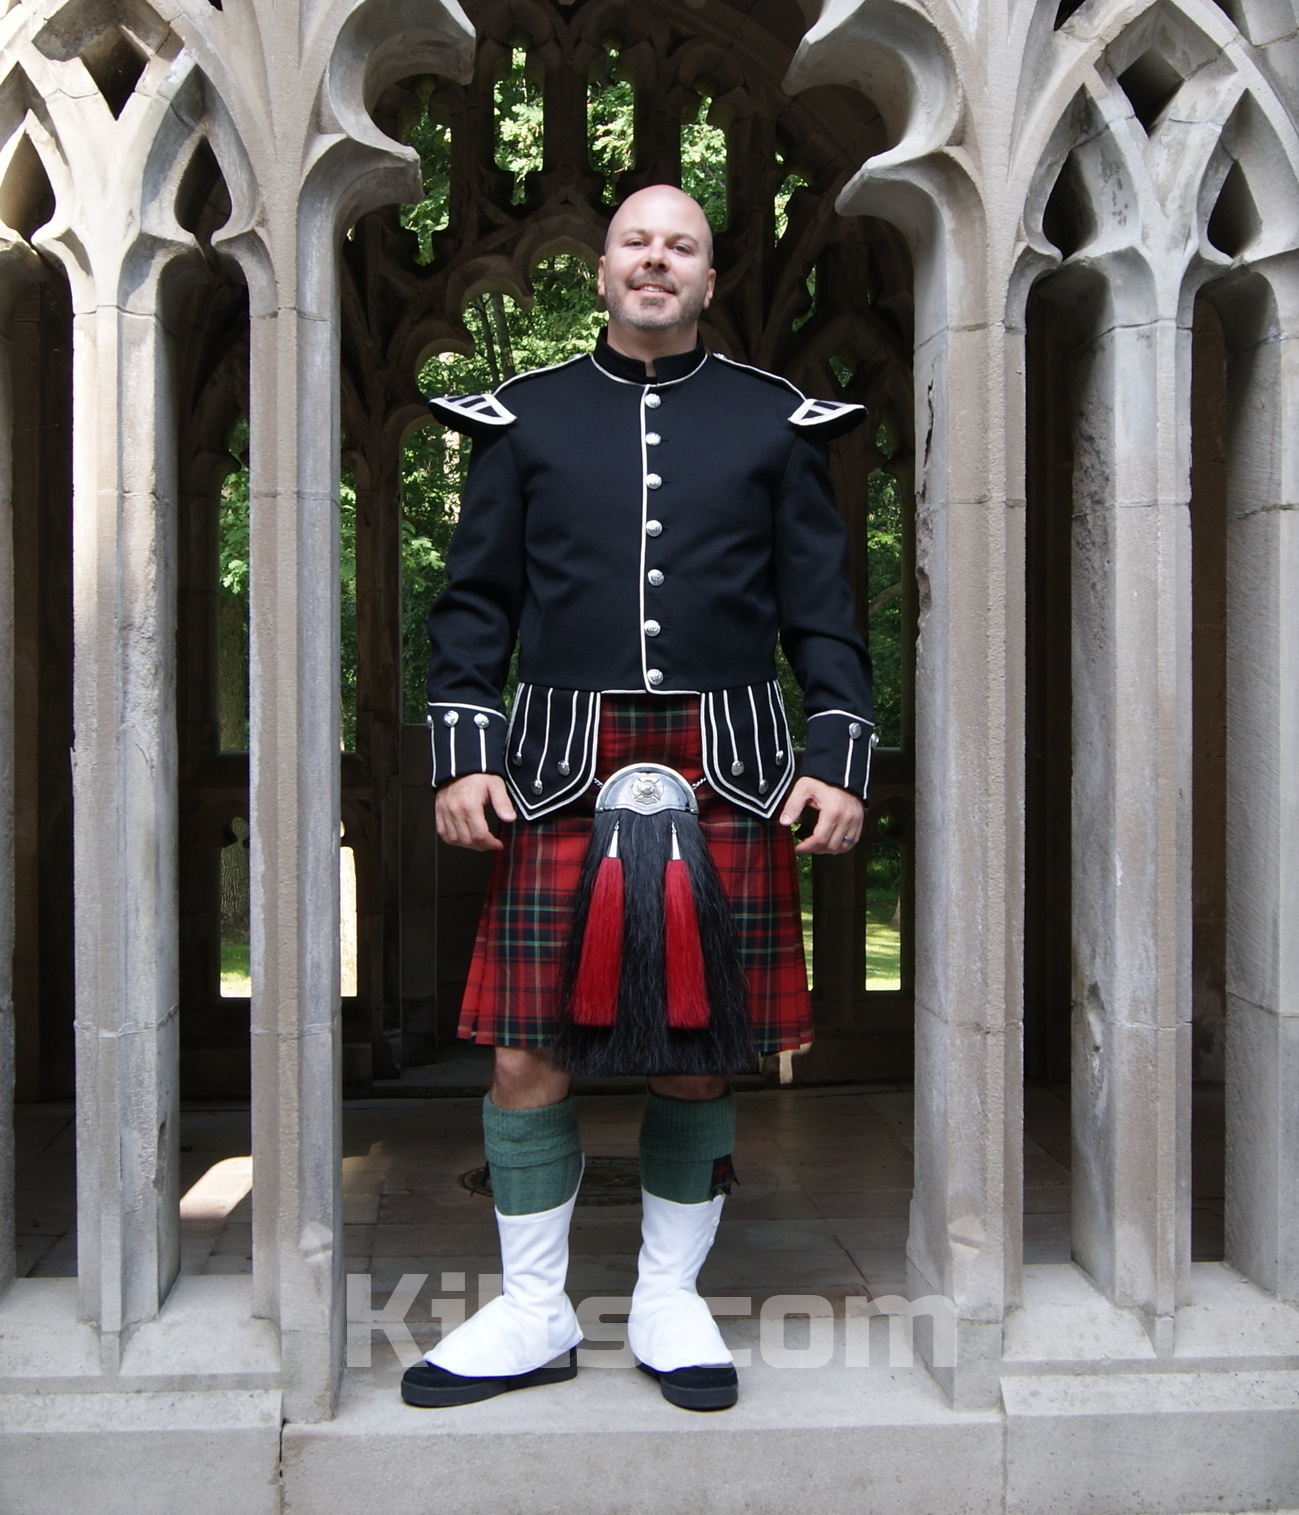 Check out our Doublet Kilt Jacket for sale.